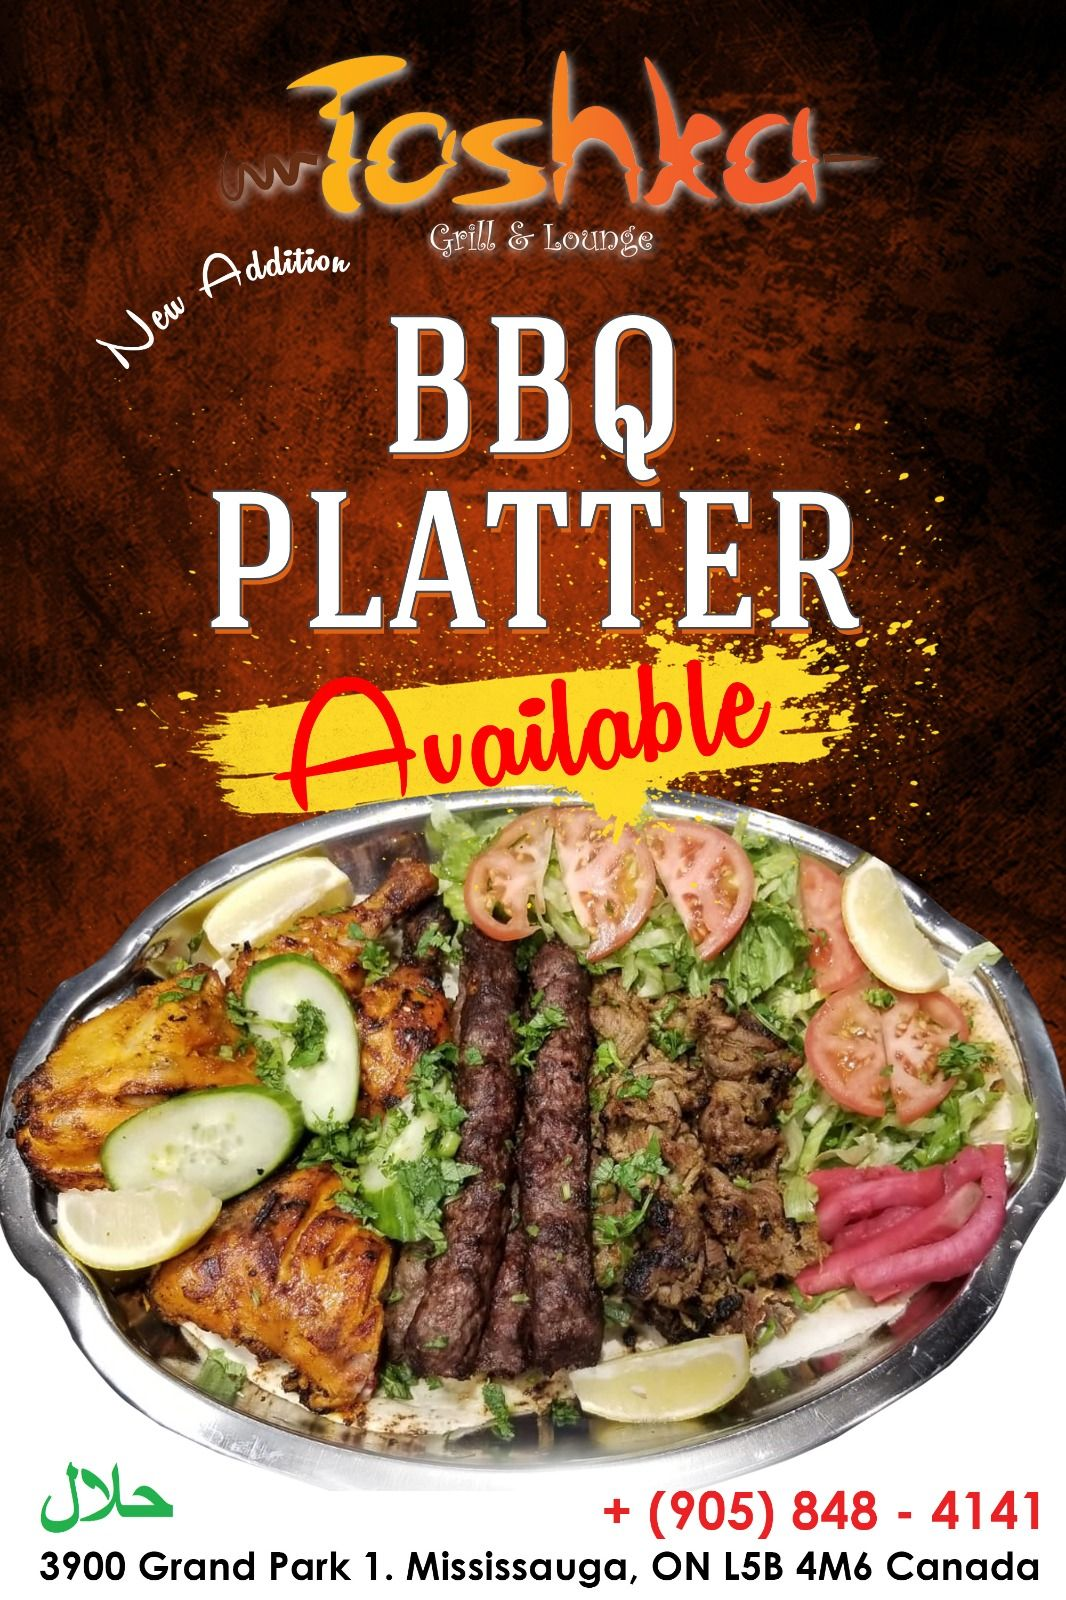 Enjoy The Taste Of Delicious Platter Of B B Q By Toshka Grill Lounge Visit Us Today To See How Good Our Food Really Is Bbq Platter Halal Recipes Desi Food